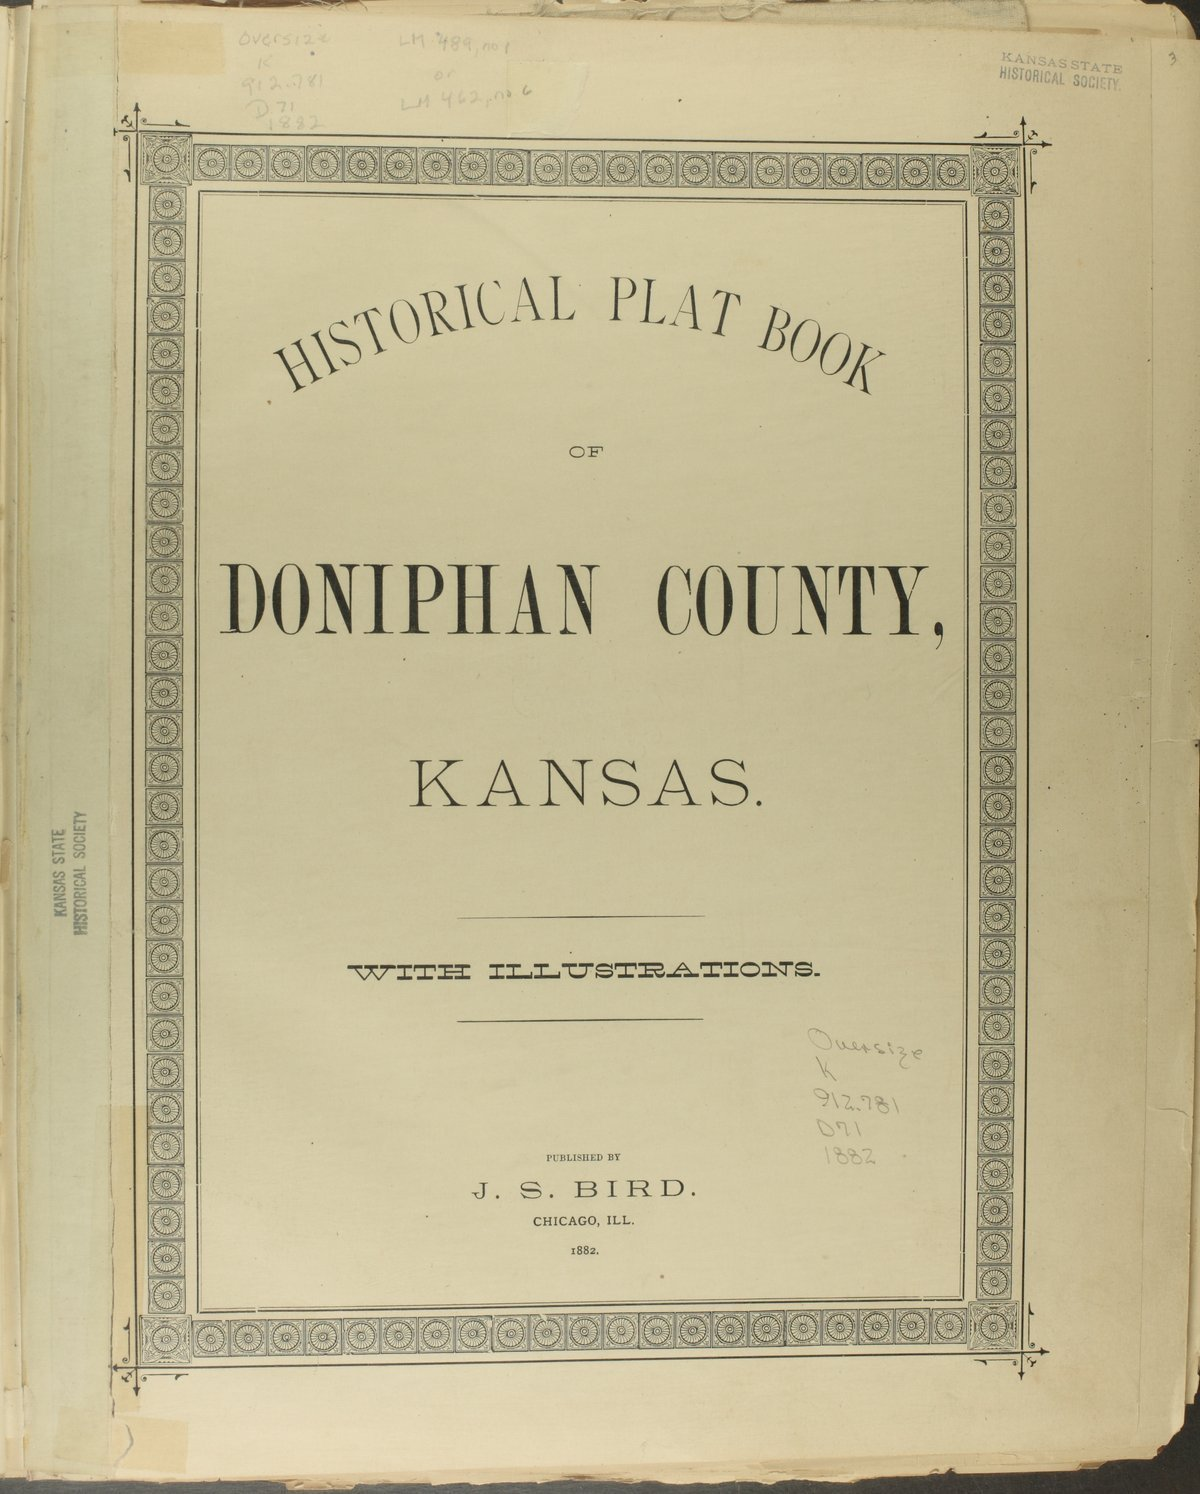 Historical plat book of Doniphan County, Kansas - Title Page